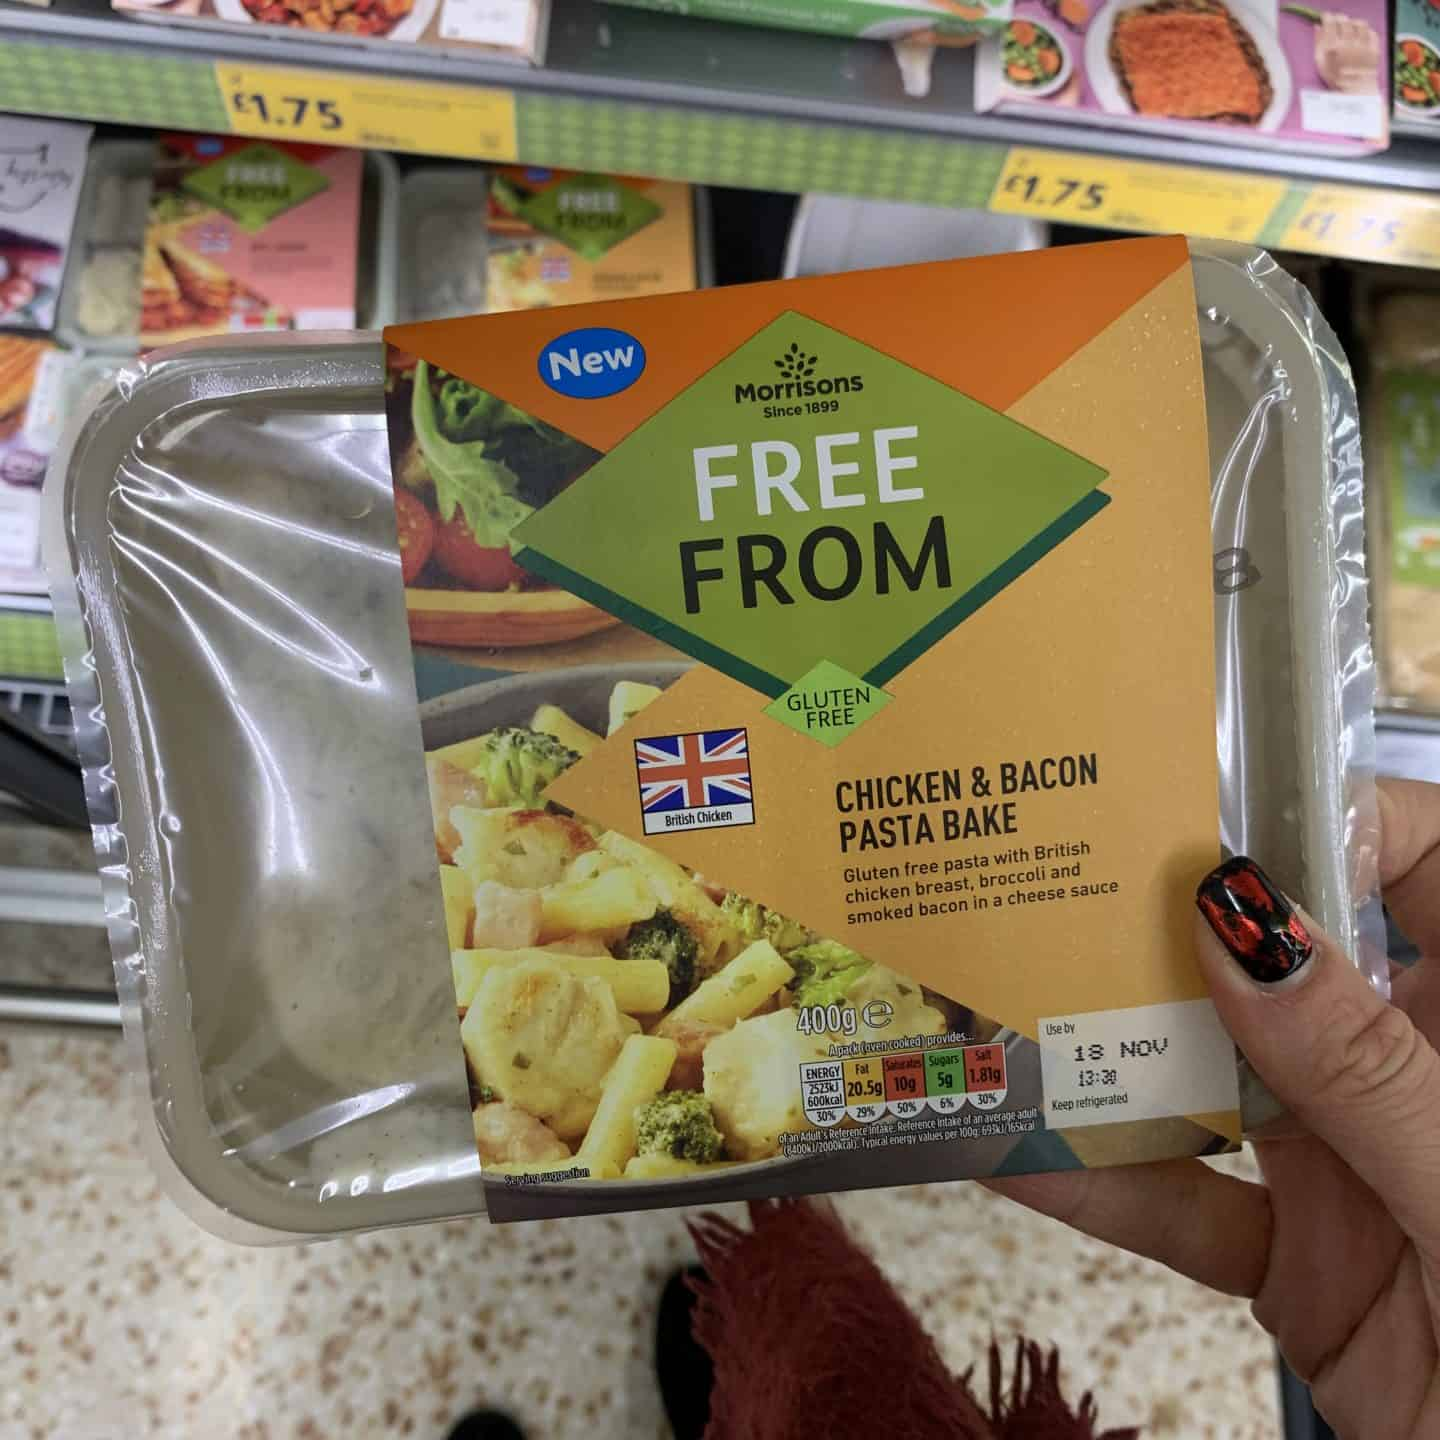 new gluten free products uk november 2019 15